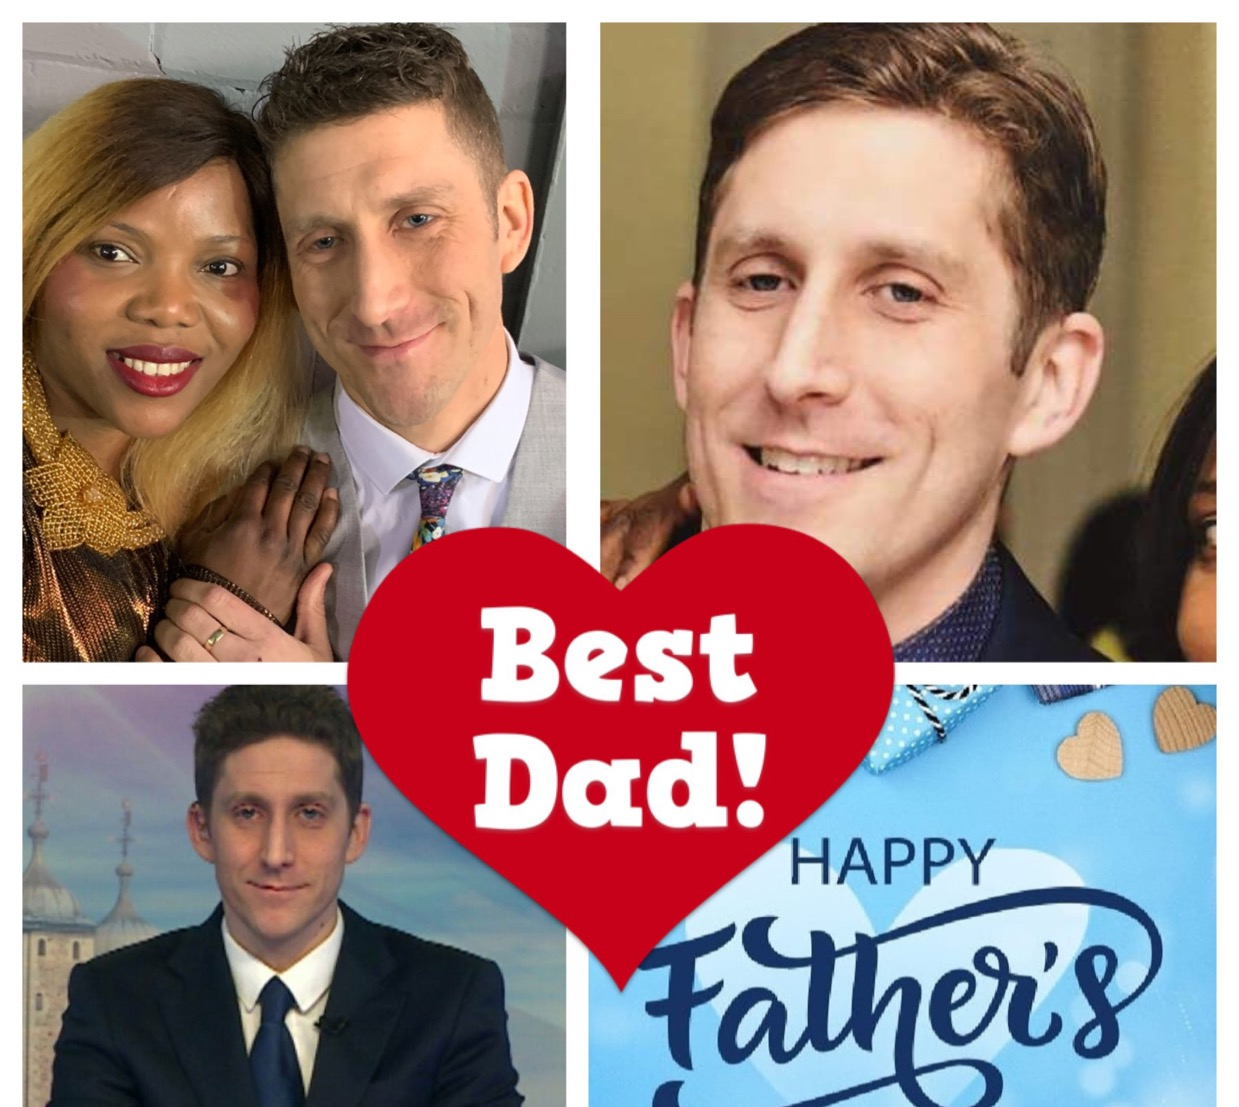 HAPPY FATHERS DAY TO THE